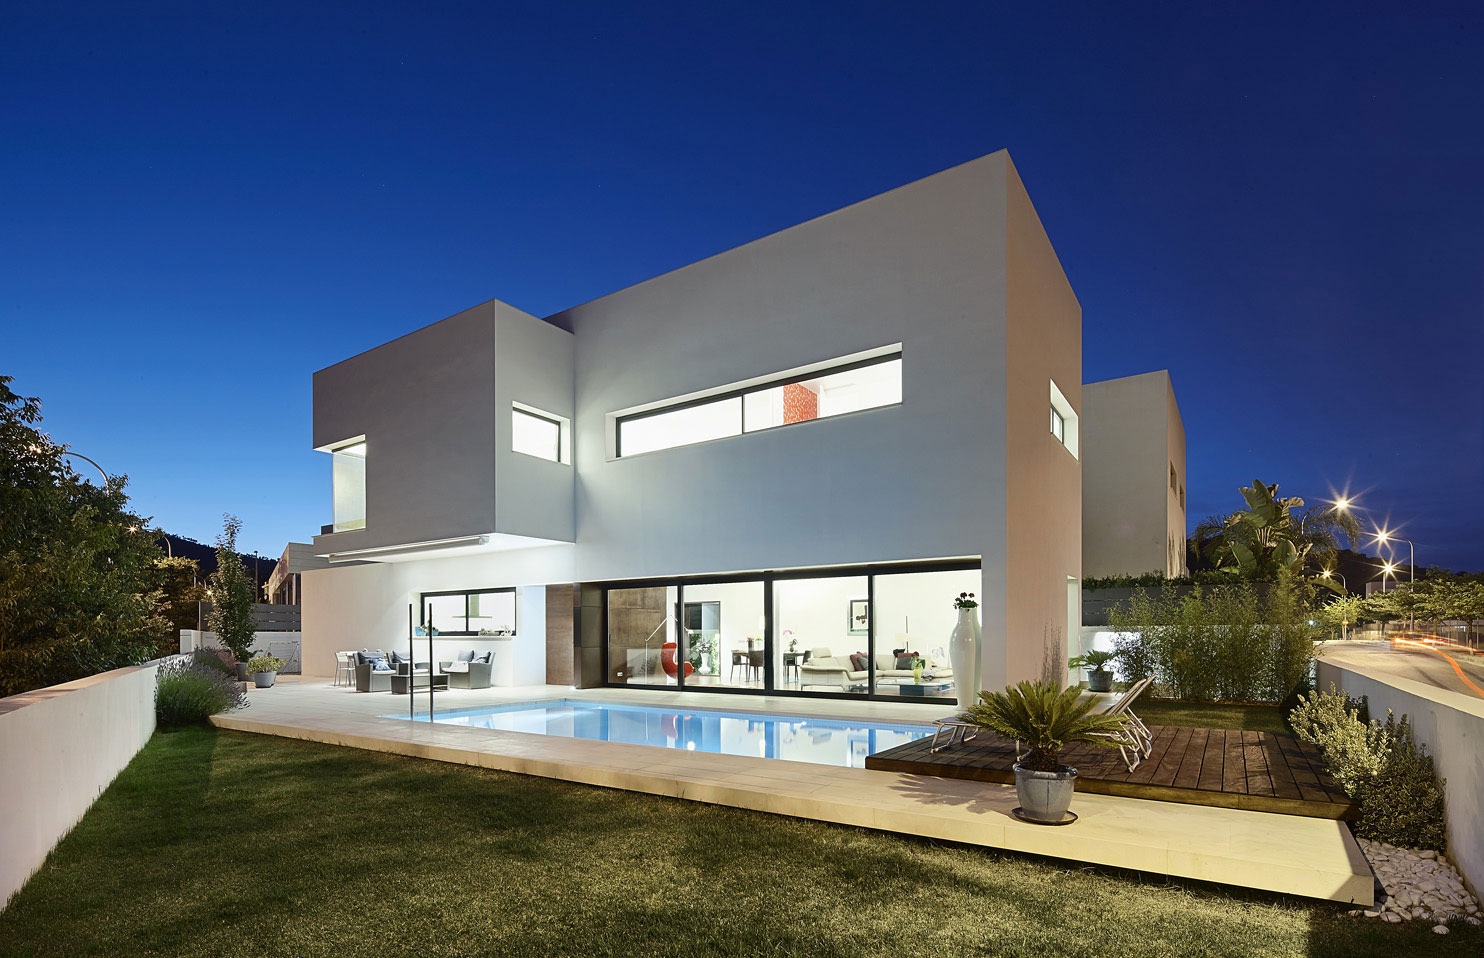 212 House by Alfonso Reina